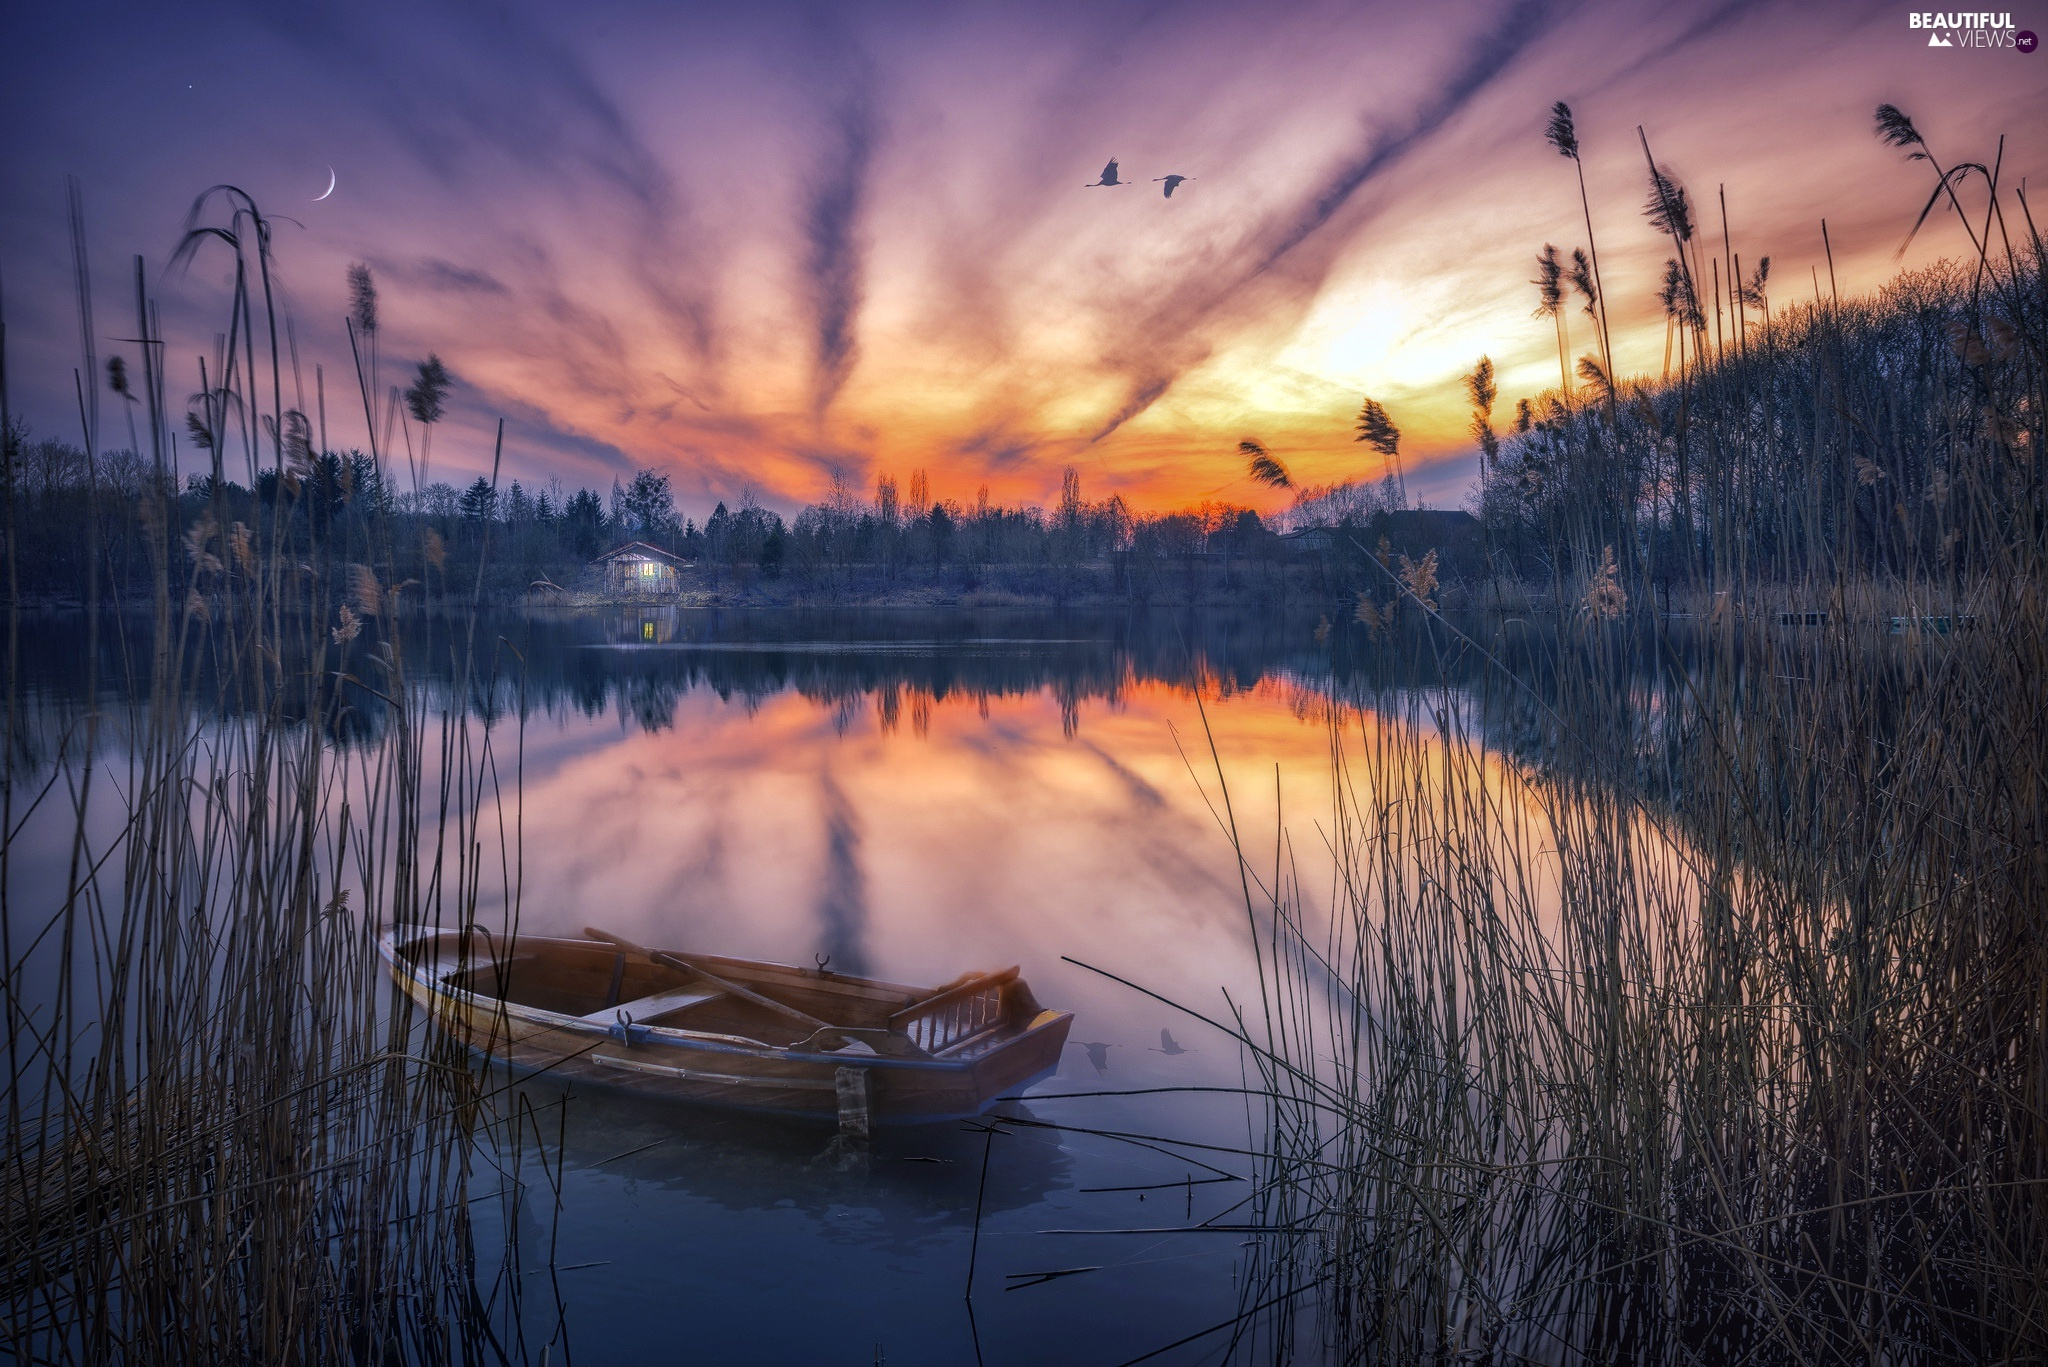 Boat, lake, birds, cane, Great Sunsets, Home, flight